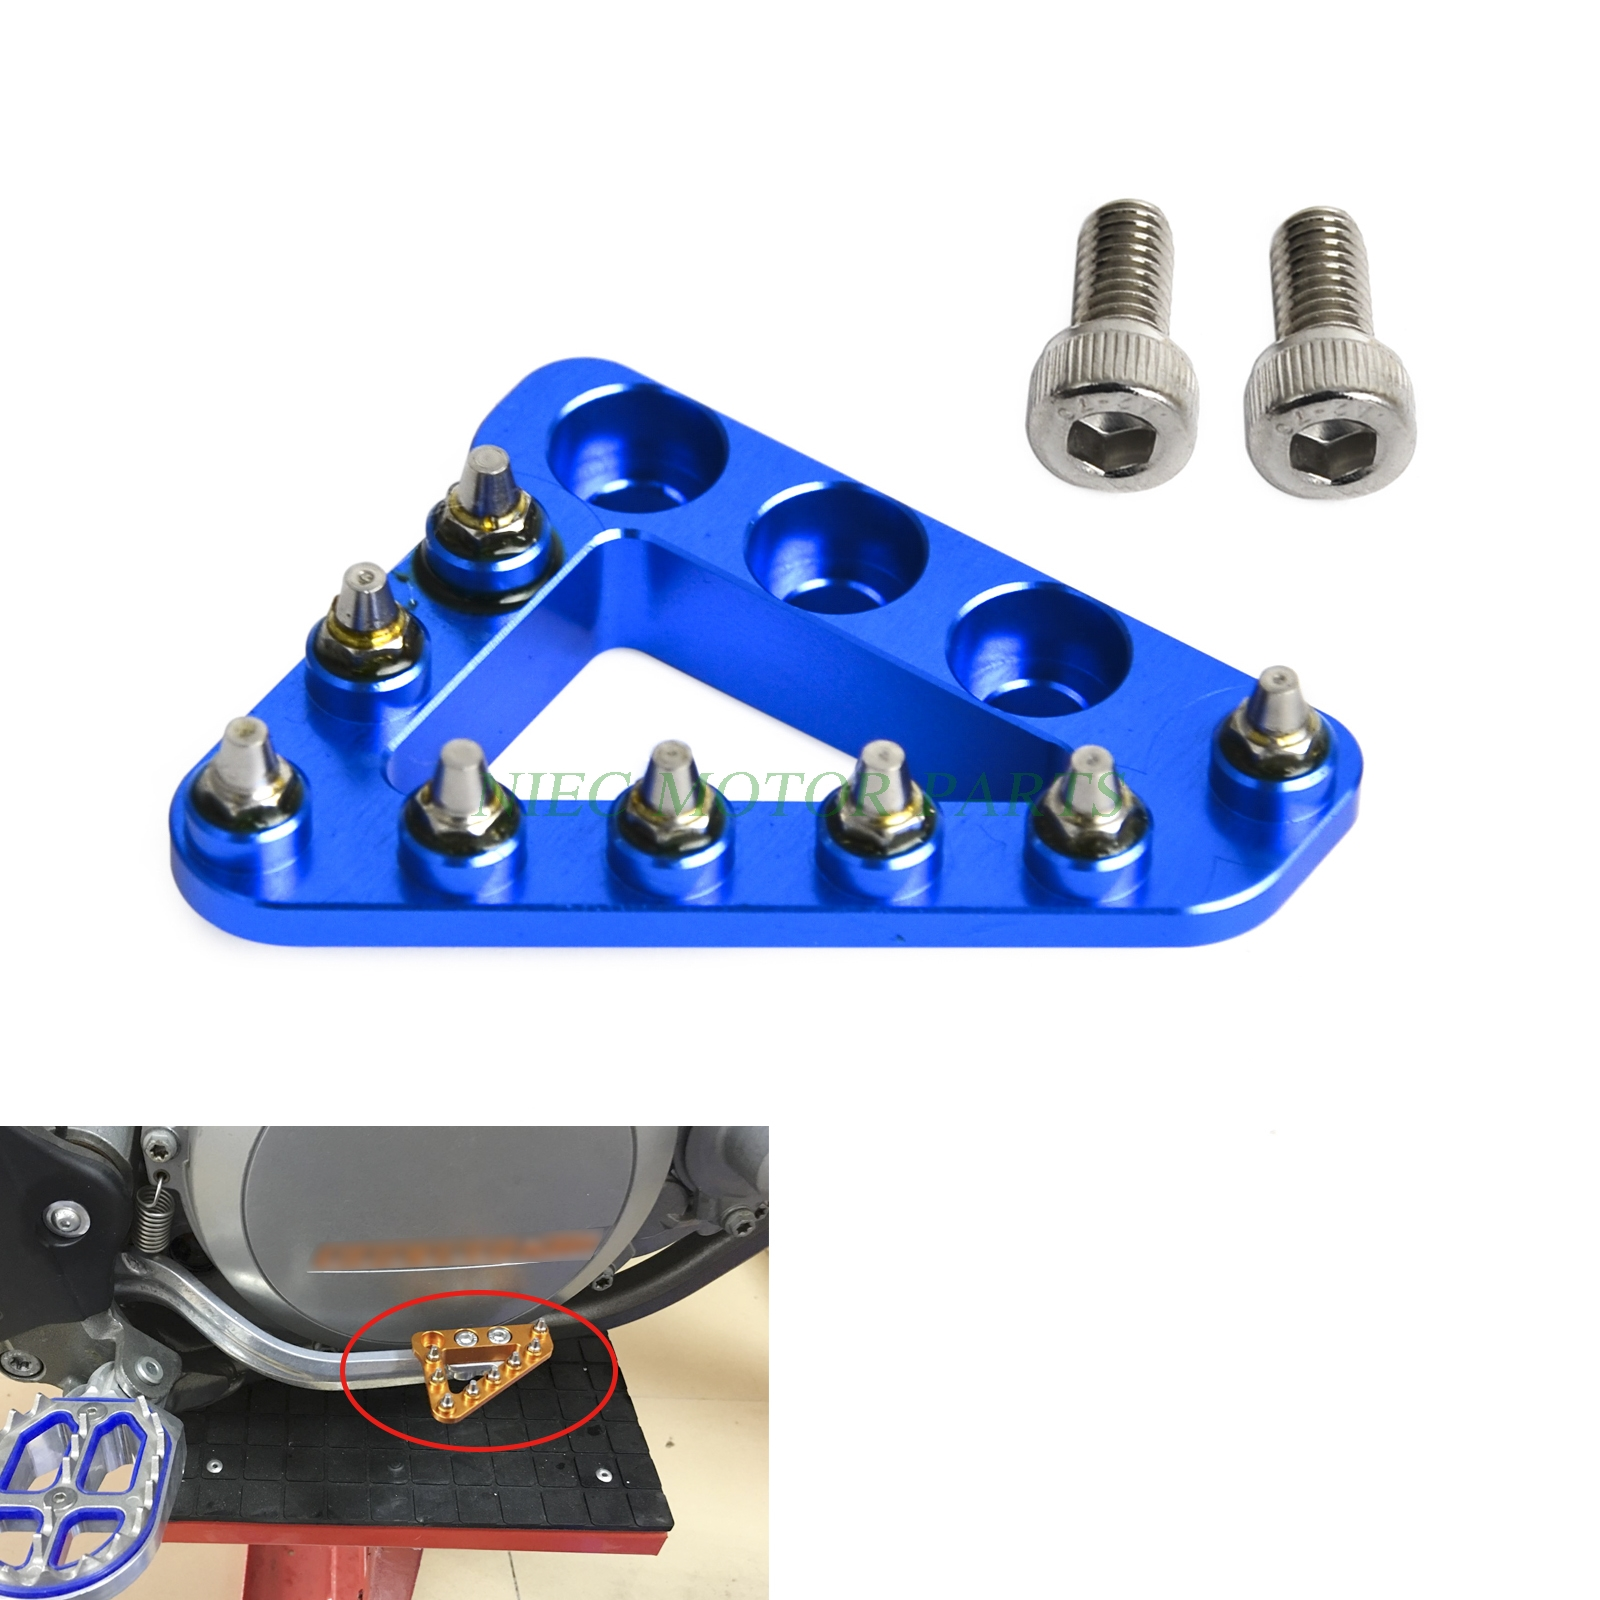 New Large CNC Rear Brake Pedal Step Plate Tip For Husaberg FE TE FS FX Husqvarna FE TC TE FC 125 250 300 450 501 650 701